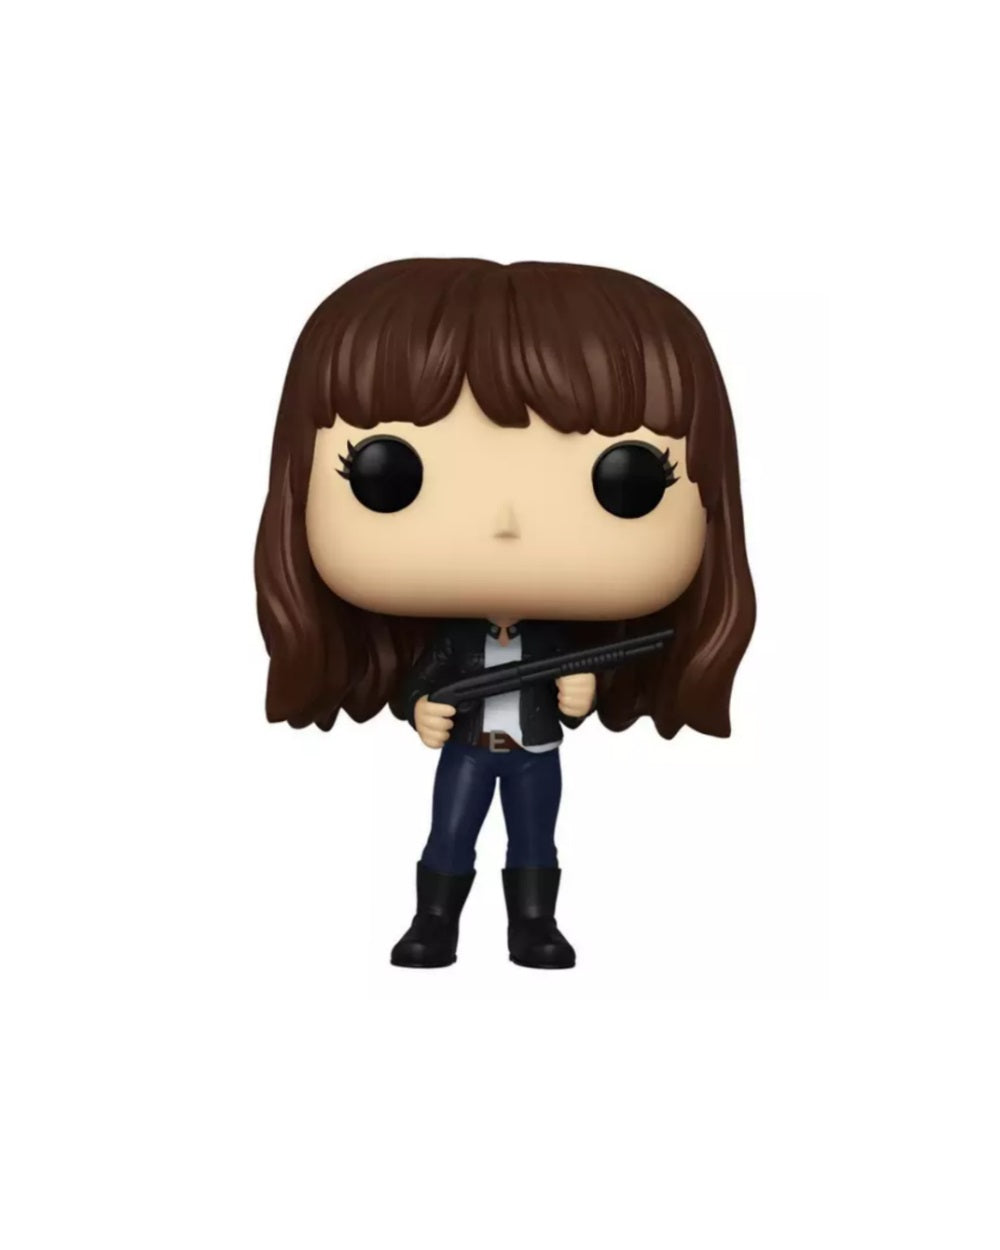 Funko POP - Zombieland Wichita #999 - The Pink a la Mode - Funko - The Pink a la Mode